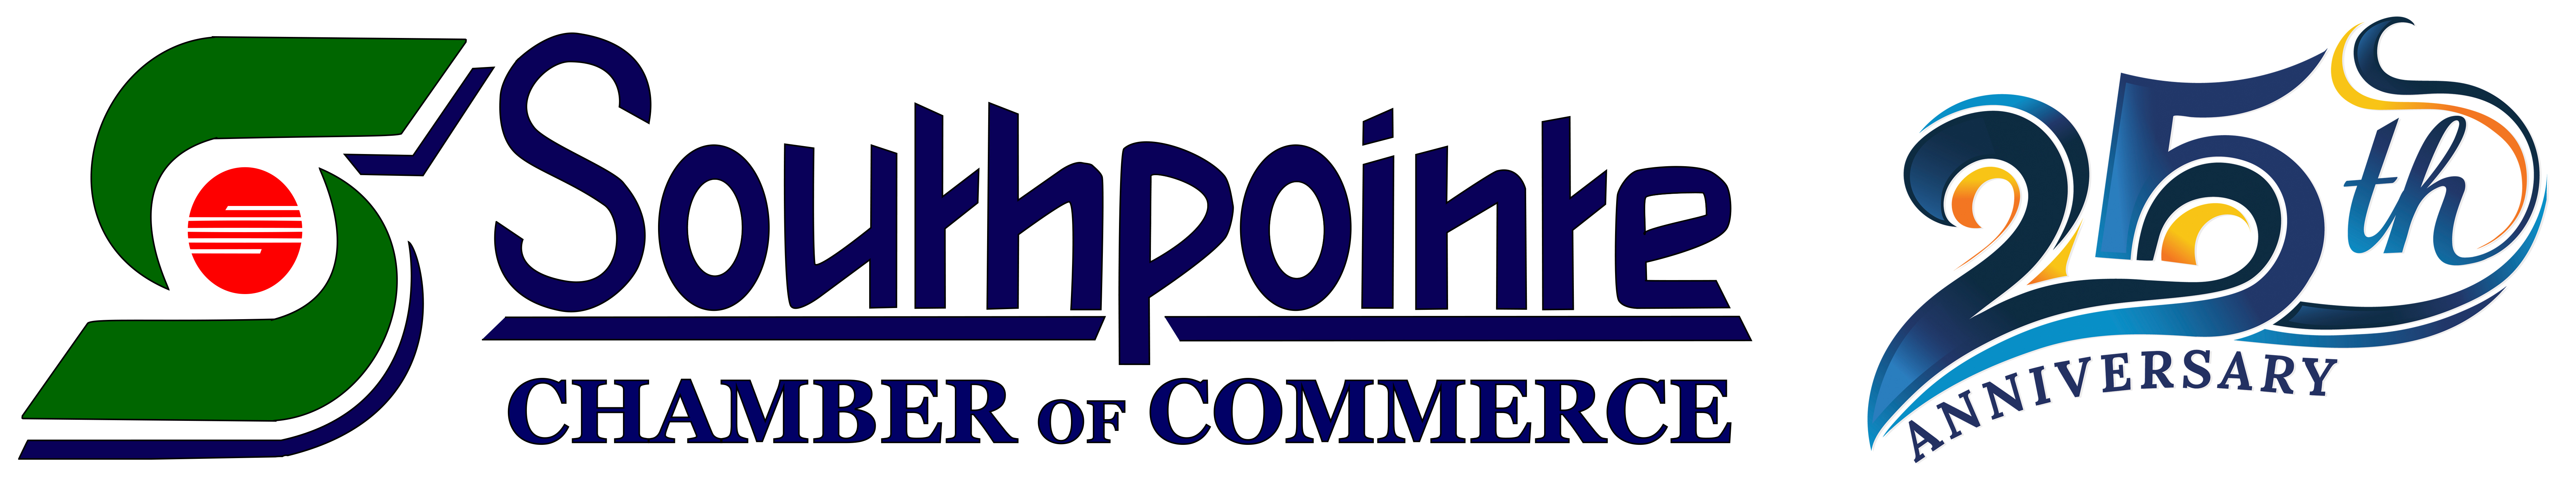 Southpointe Chamber of Commerce